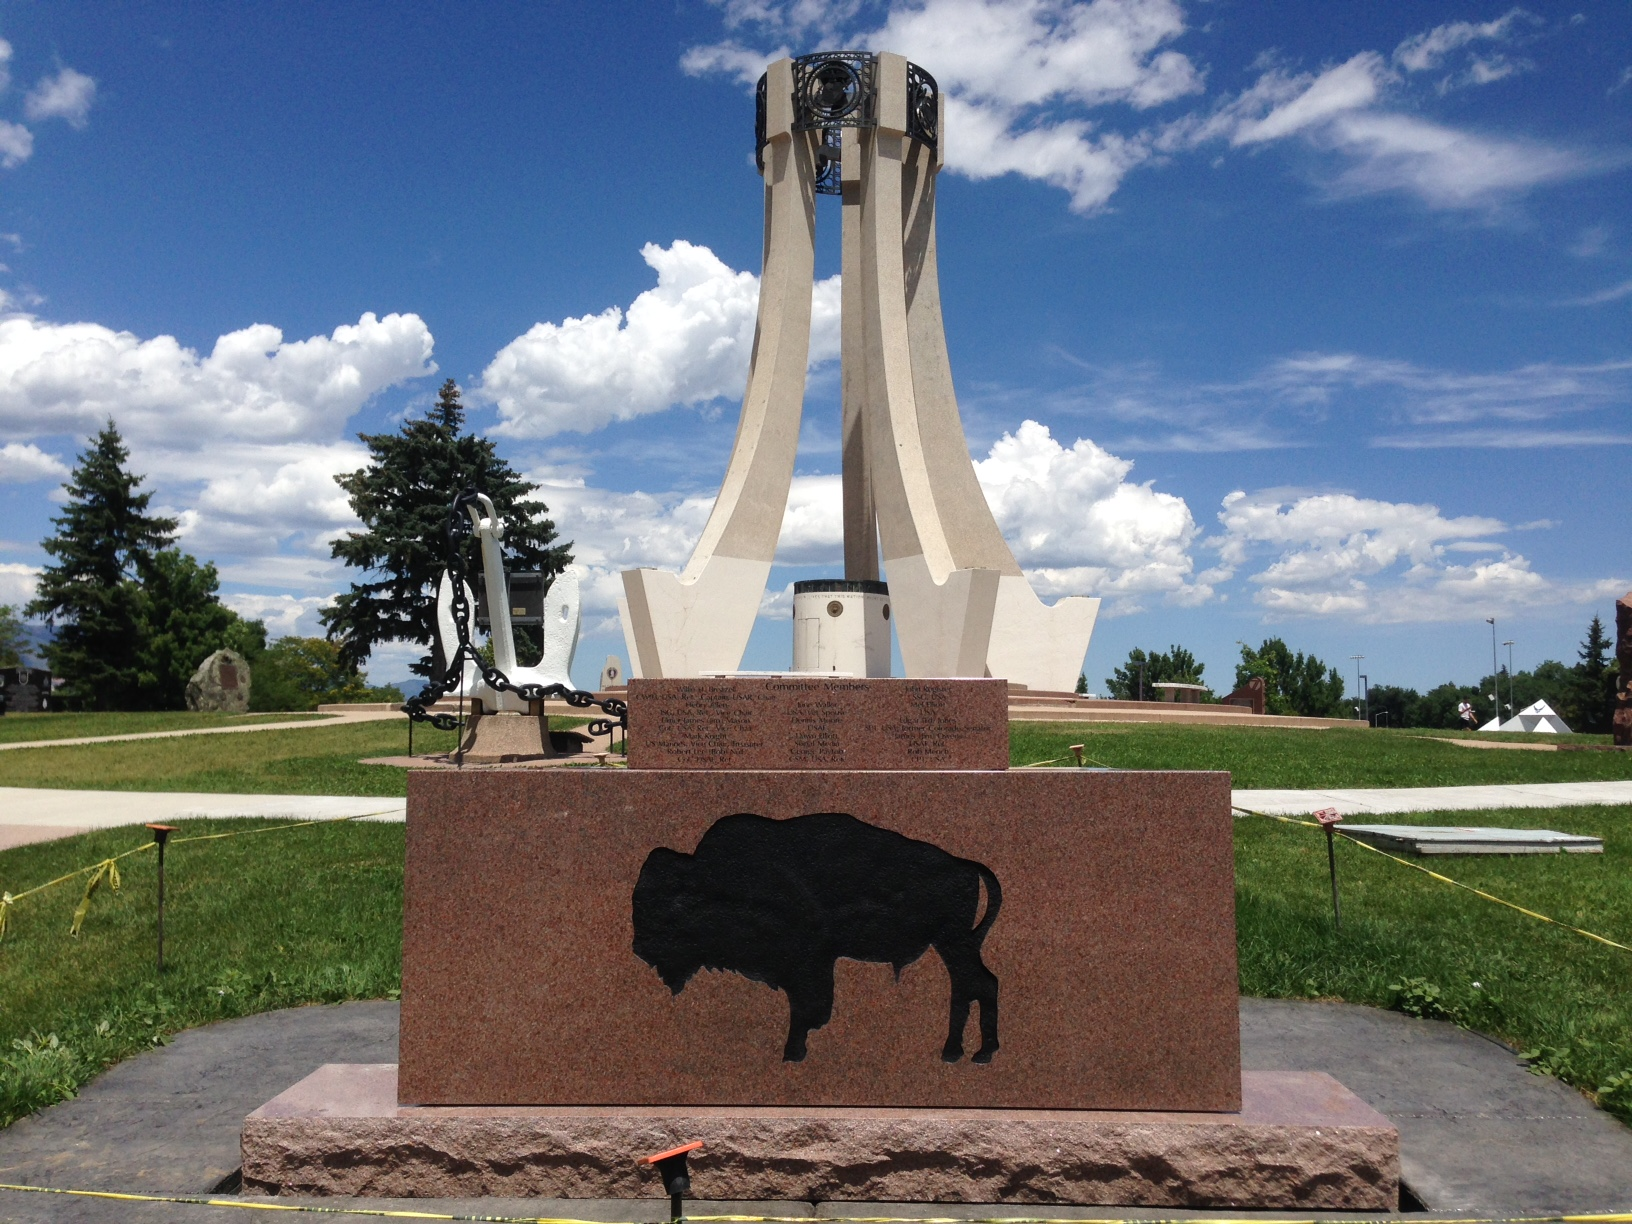 The back side of the Buffalo Soldier Memorial monument at Memorial Park.